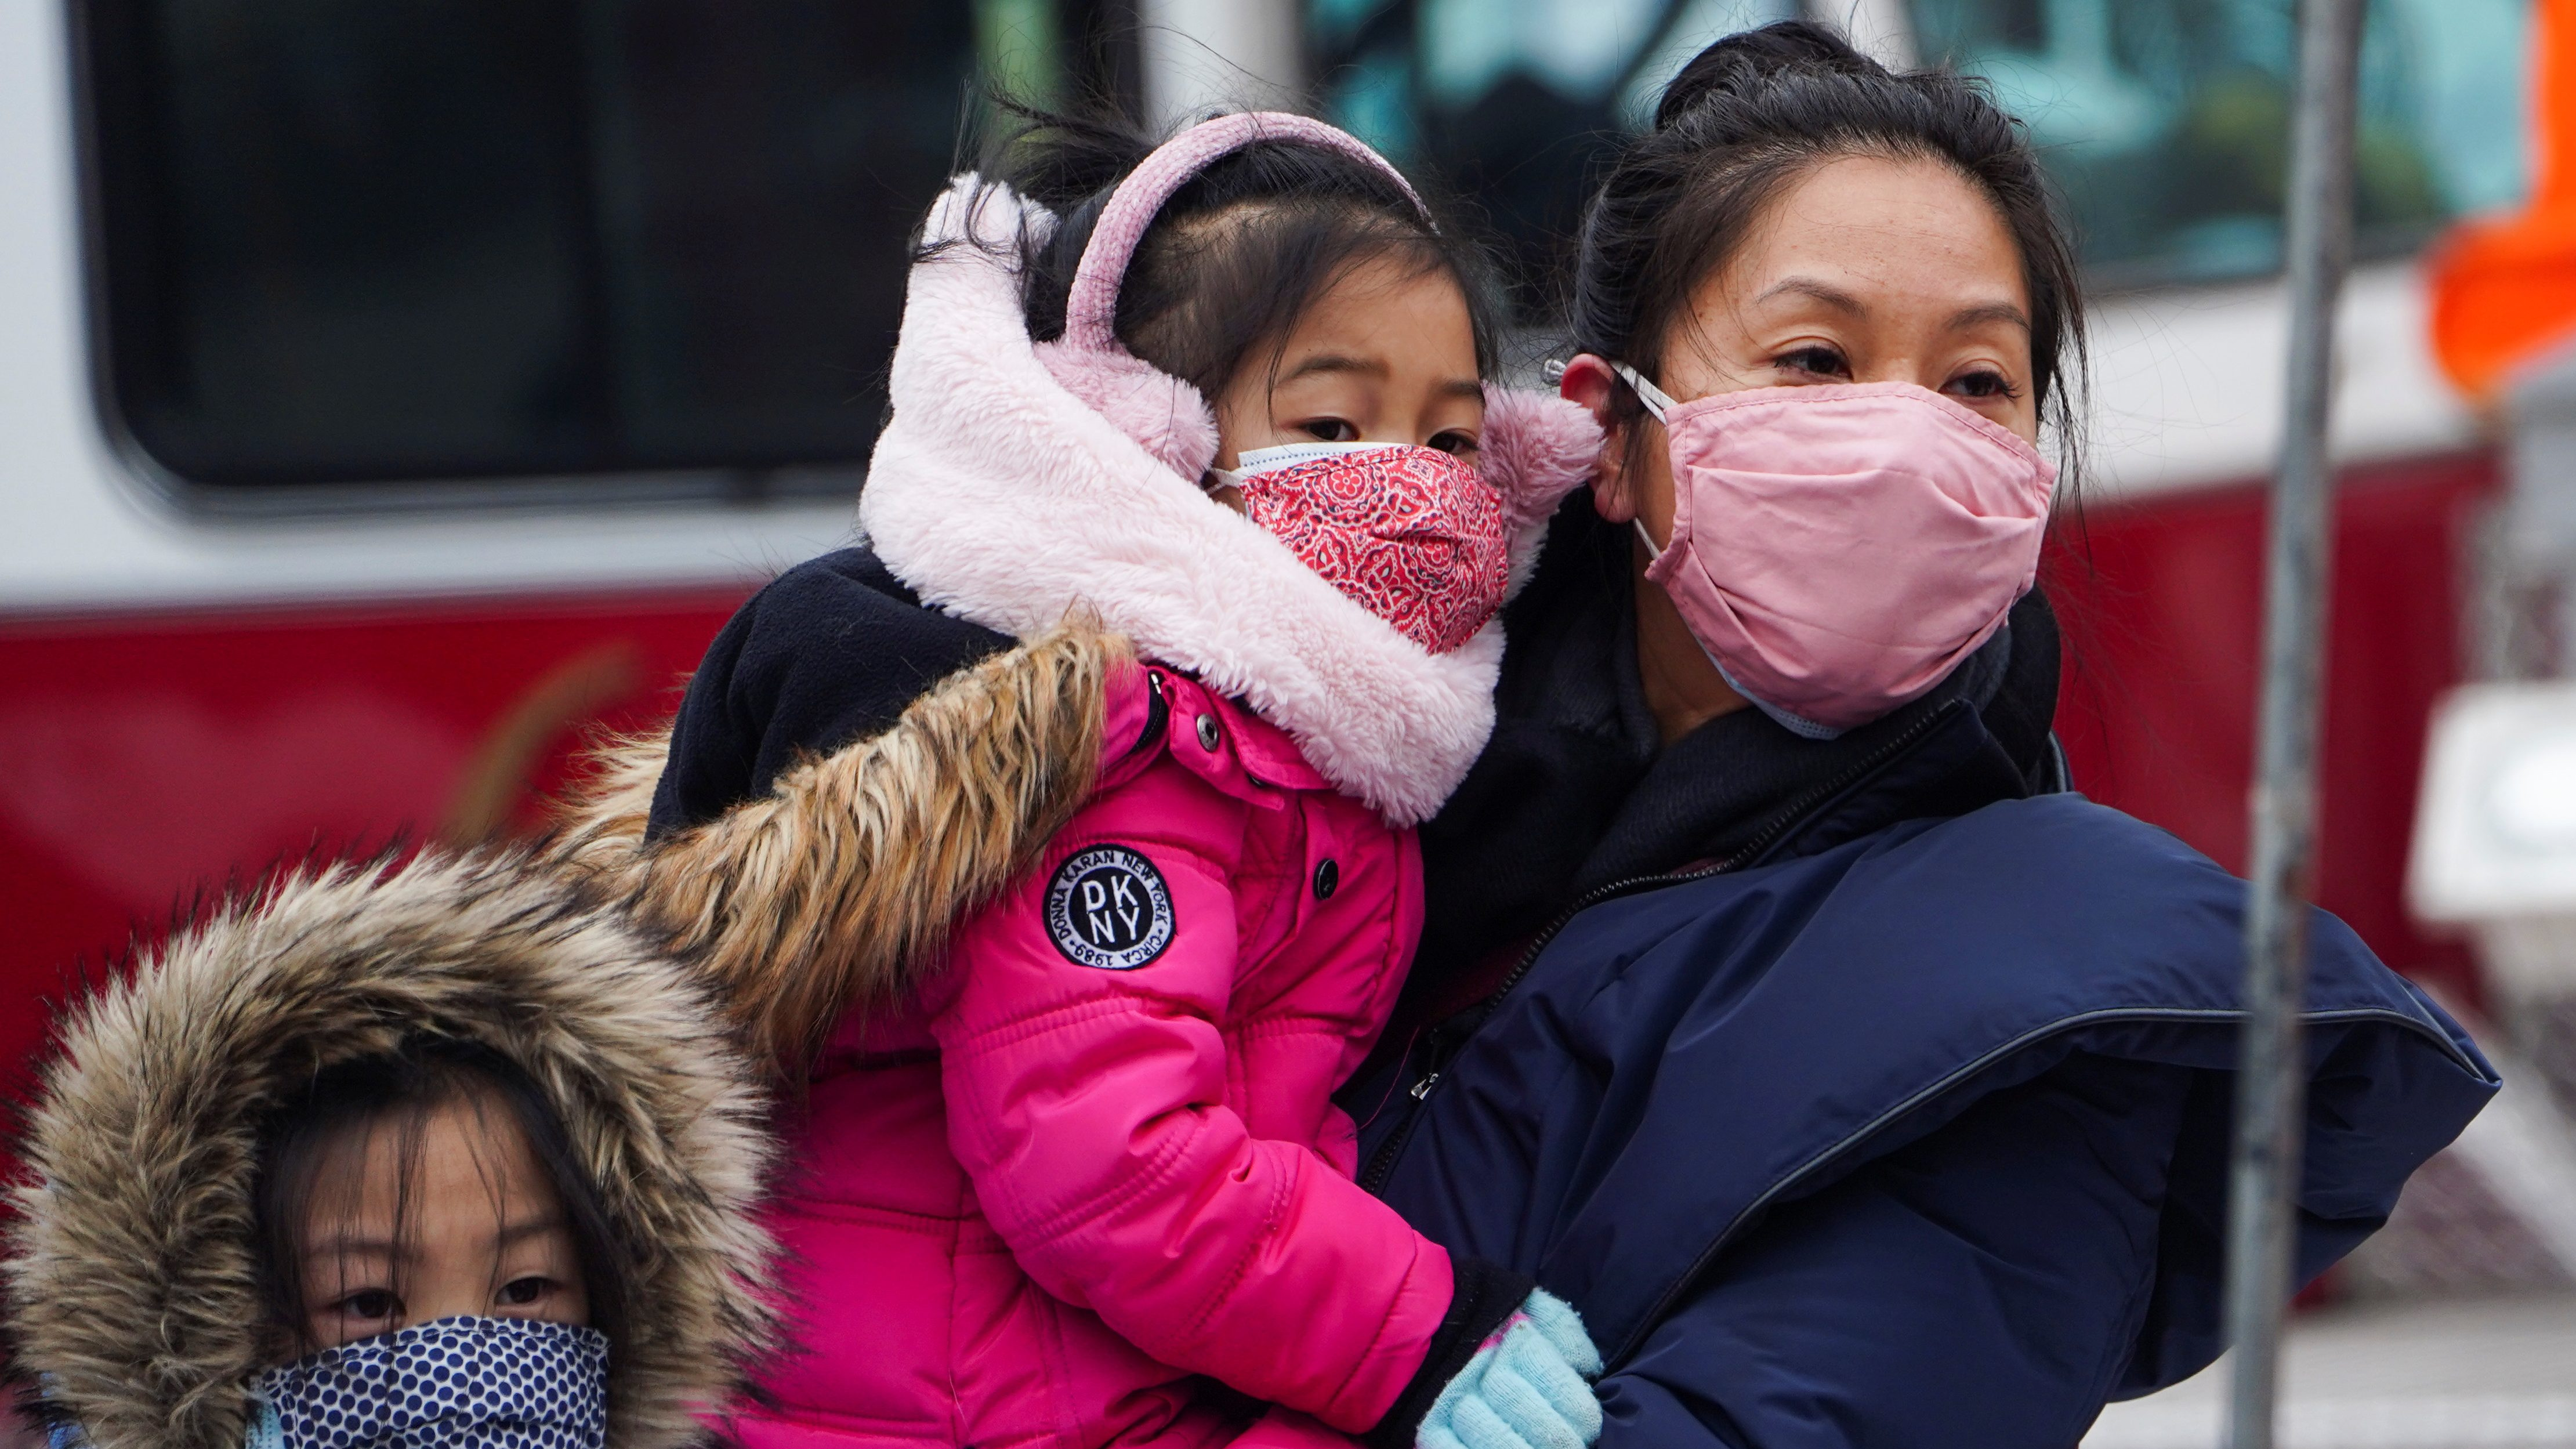 An Asian mother, wearing a light pink face mask and a dark blue winter coat, carries a young girl wearing a bright pink coat, pink earmuffs and a pink patterned facemask while standing next to an older young girl wearing a blue facemask. All three are watching Lunar New Year celebrations in New York City.